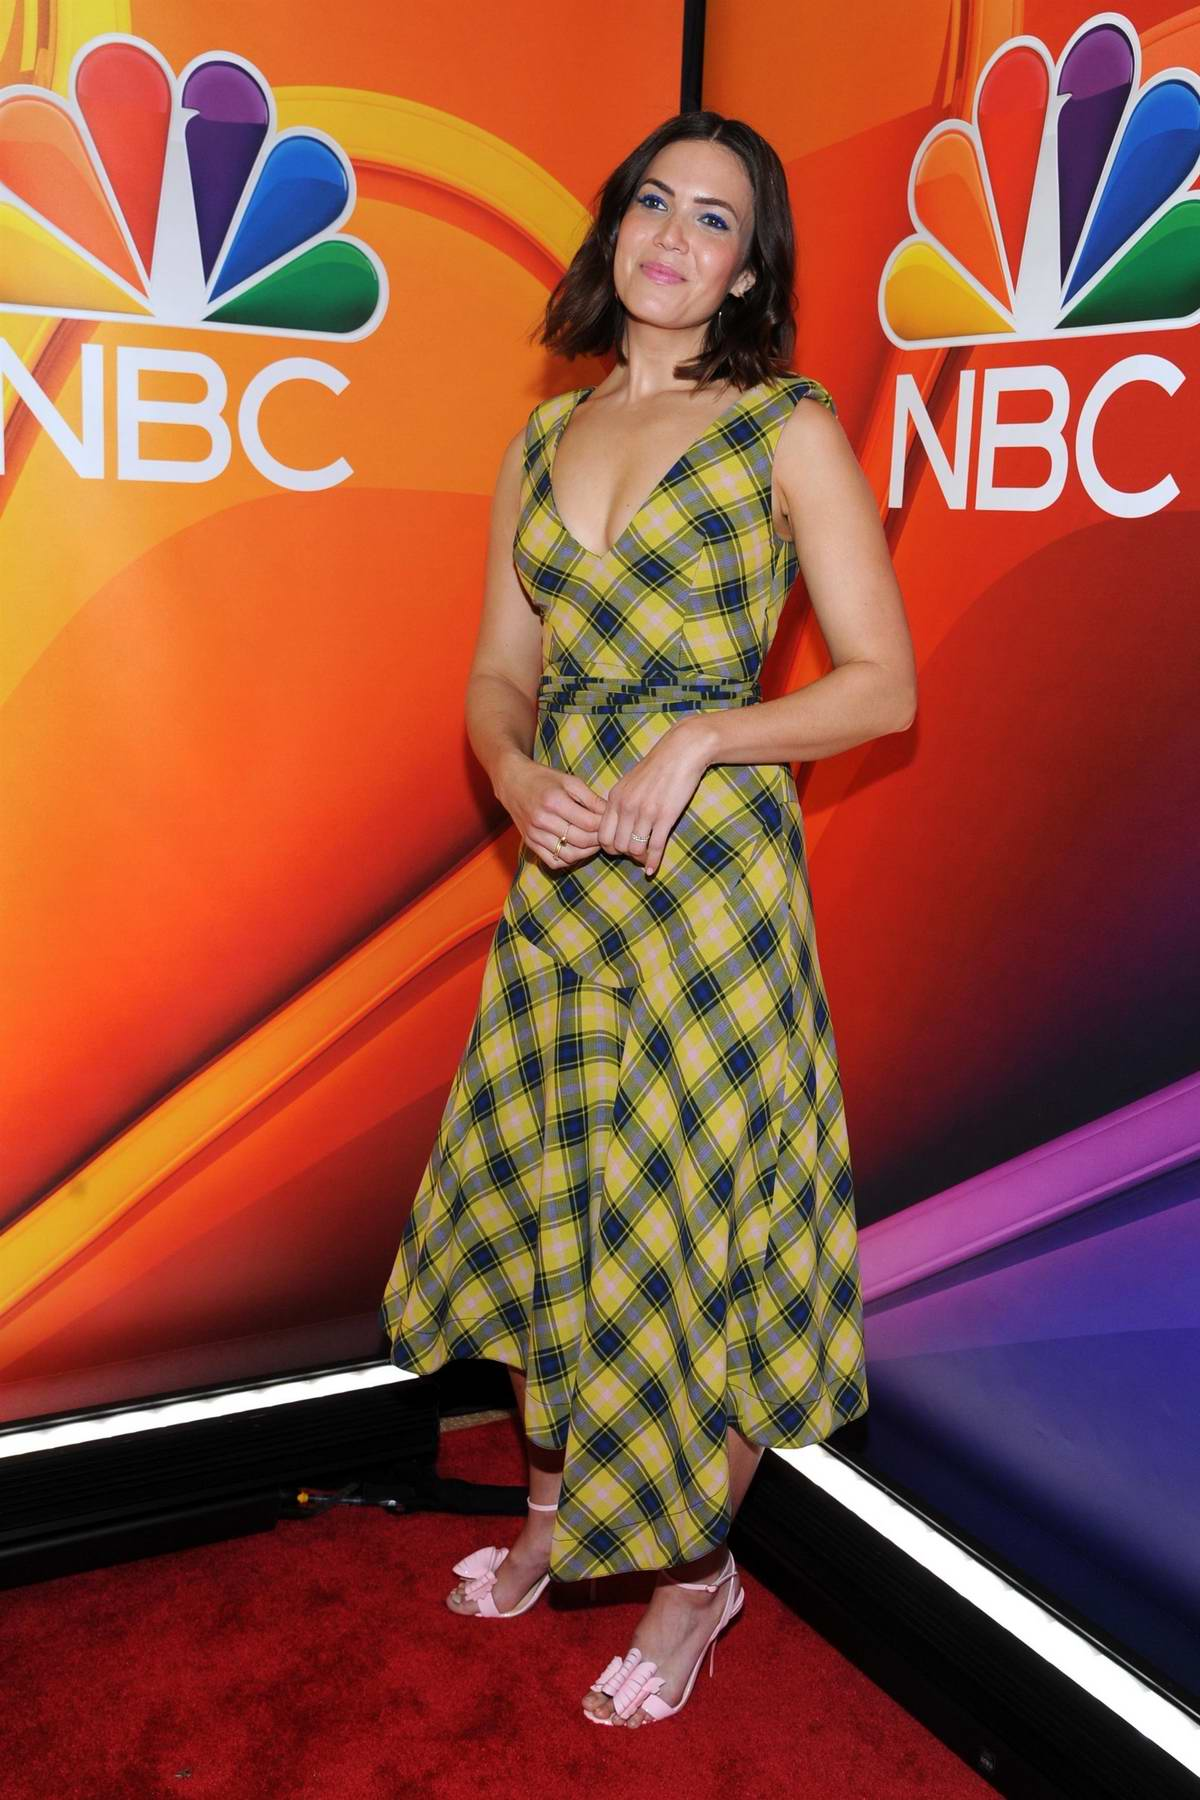 Mandy Moore attends the NBCUniversal Upfront Presentation at Four Seasons Hotel in New York City